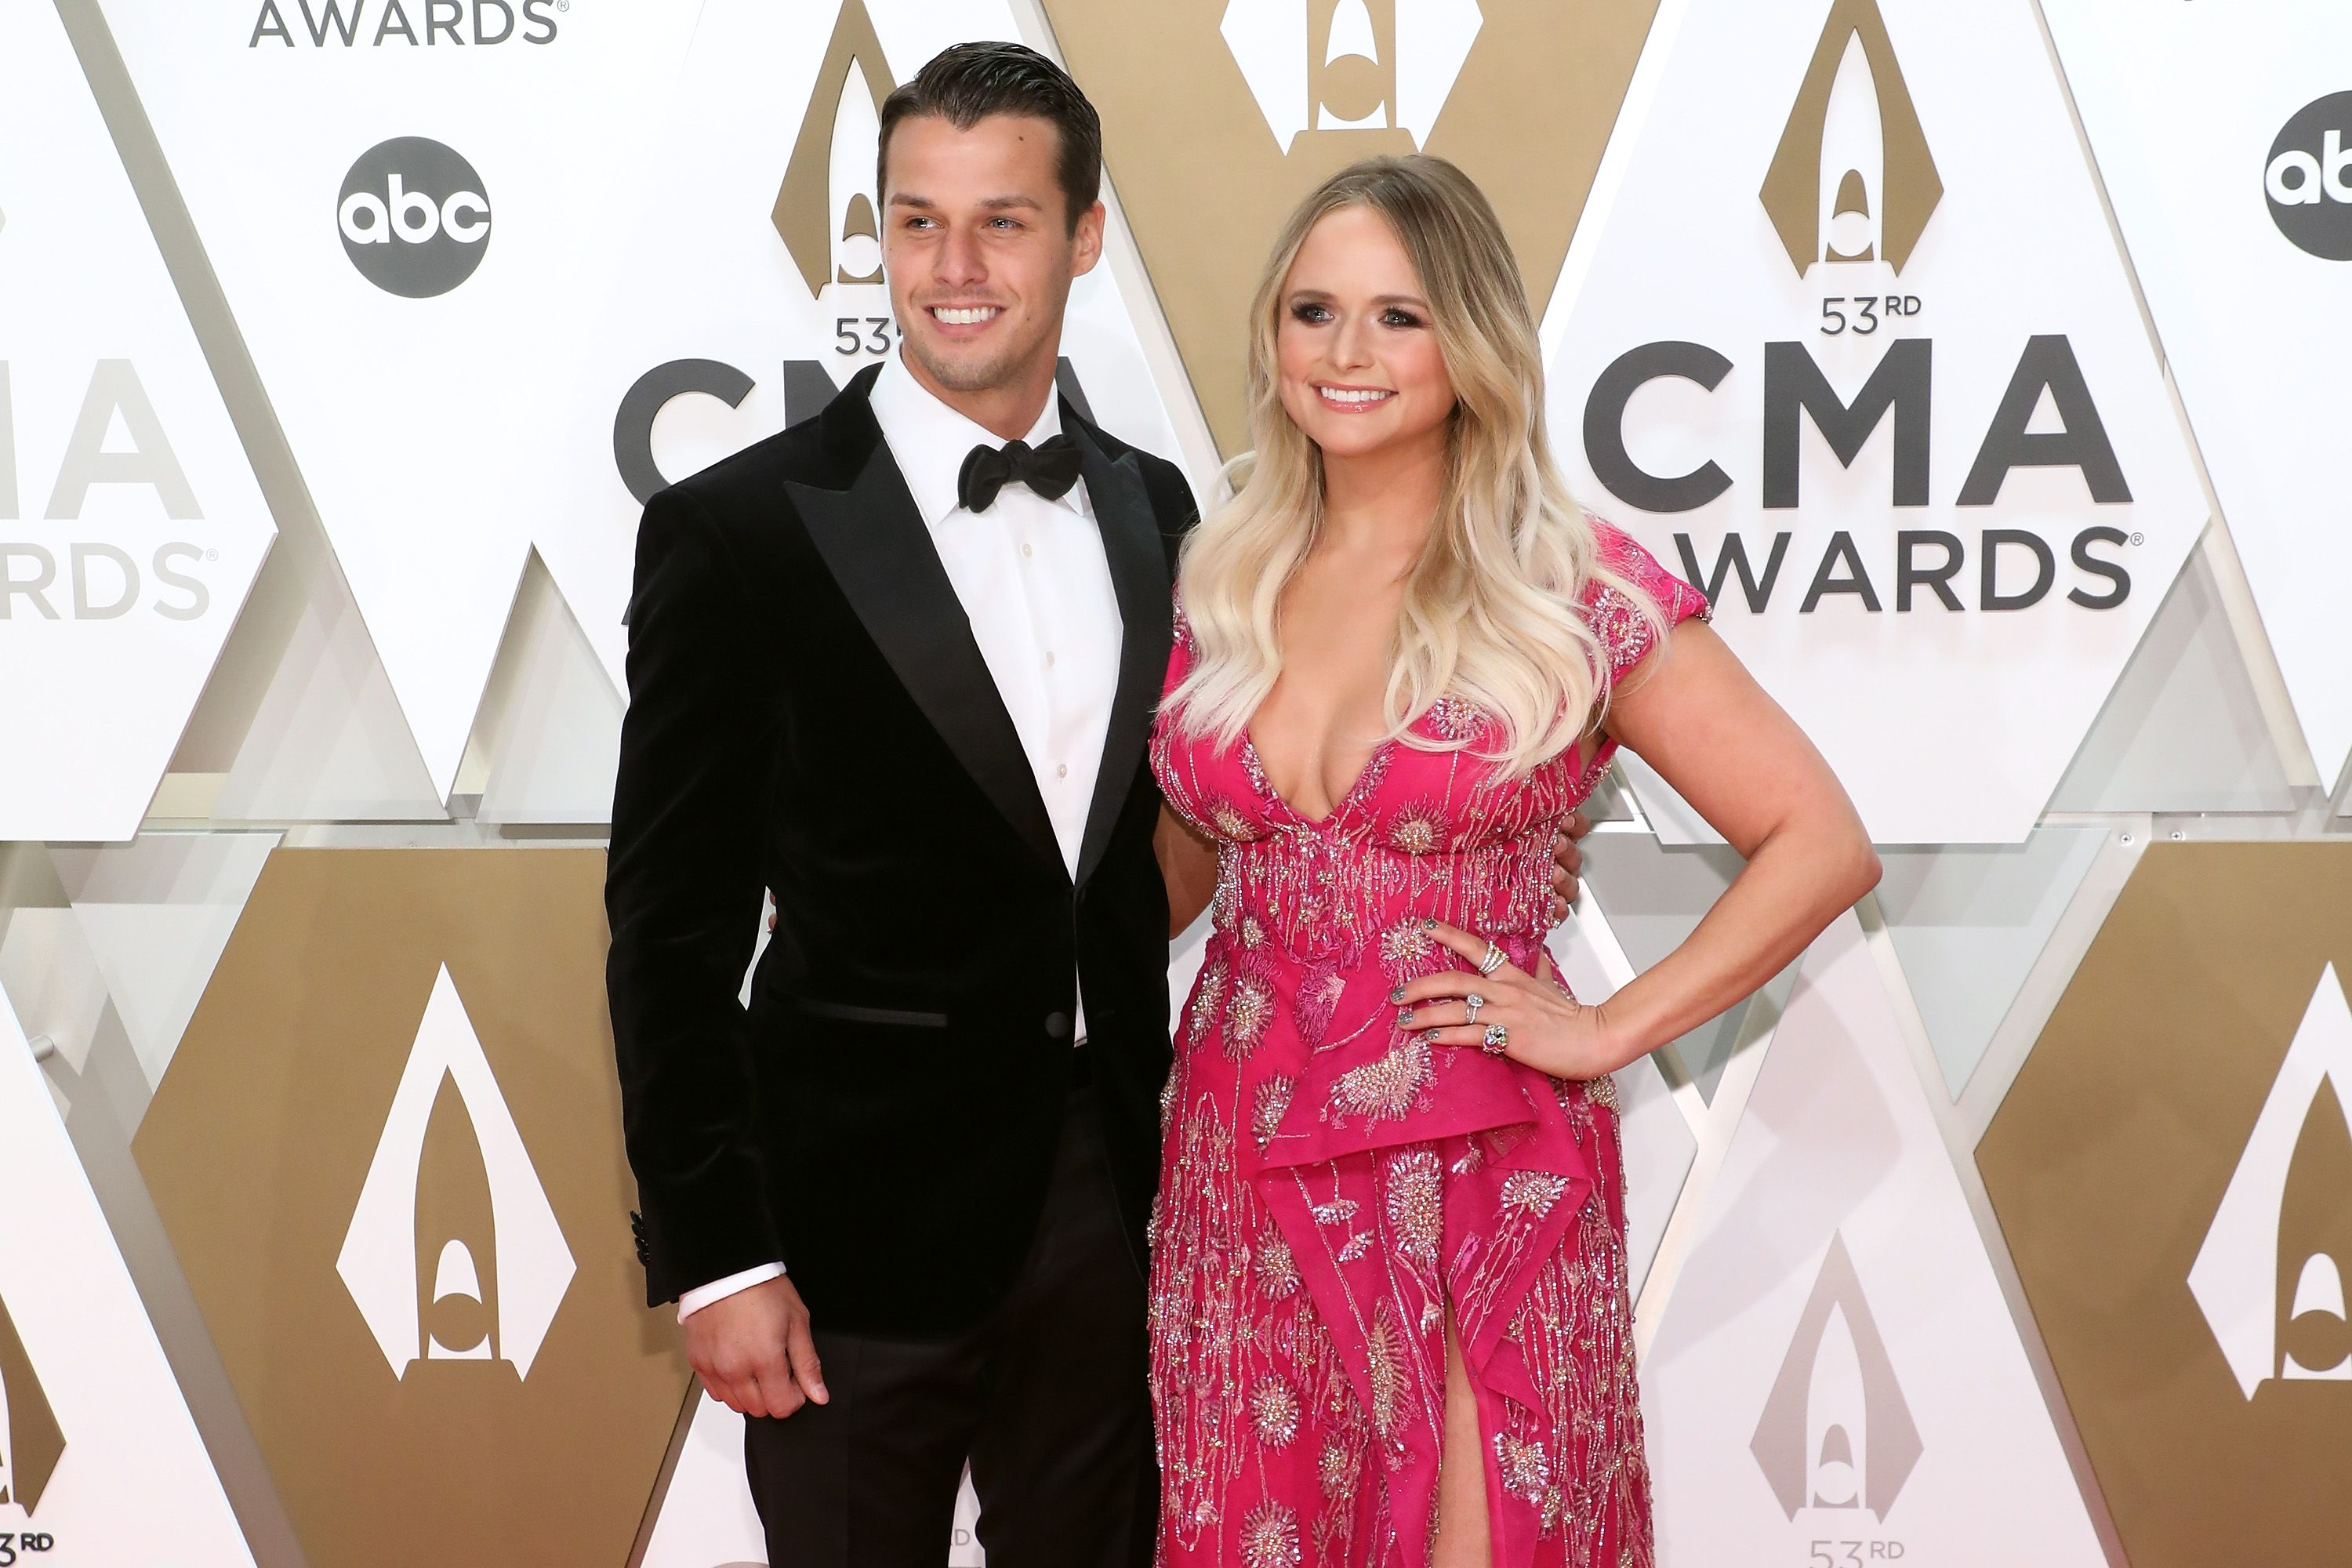 Brendan McLoughlin and Miranda Lambert at the 53rd annual CMA Awards in 2019, in Nashville, Tennessee | Source: Getty Images